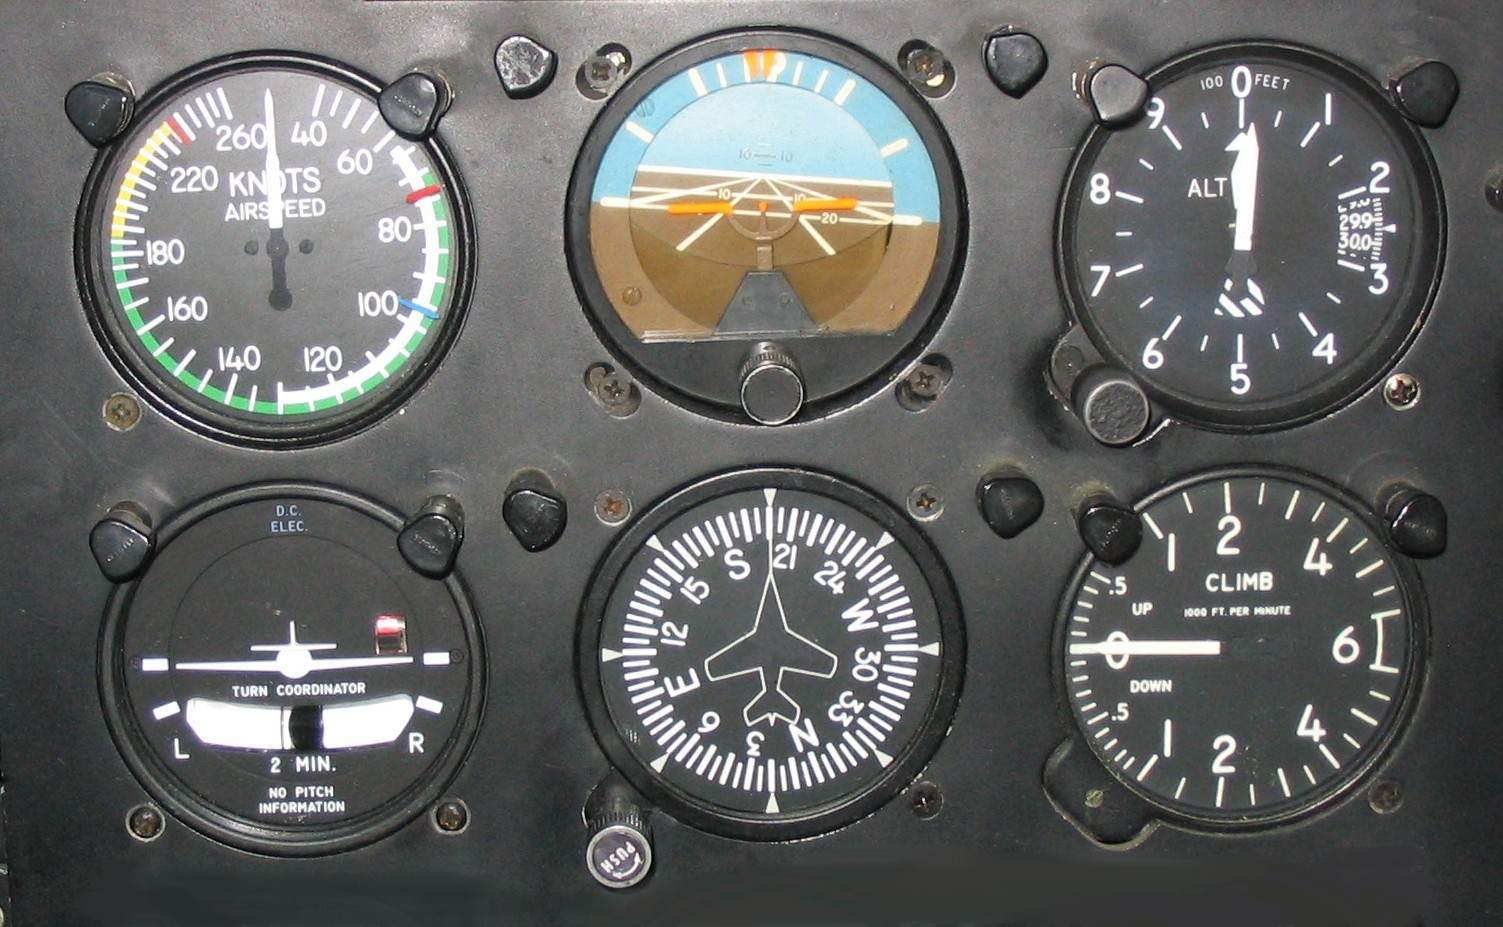 Six_flight_instruments.JPG